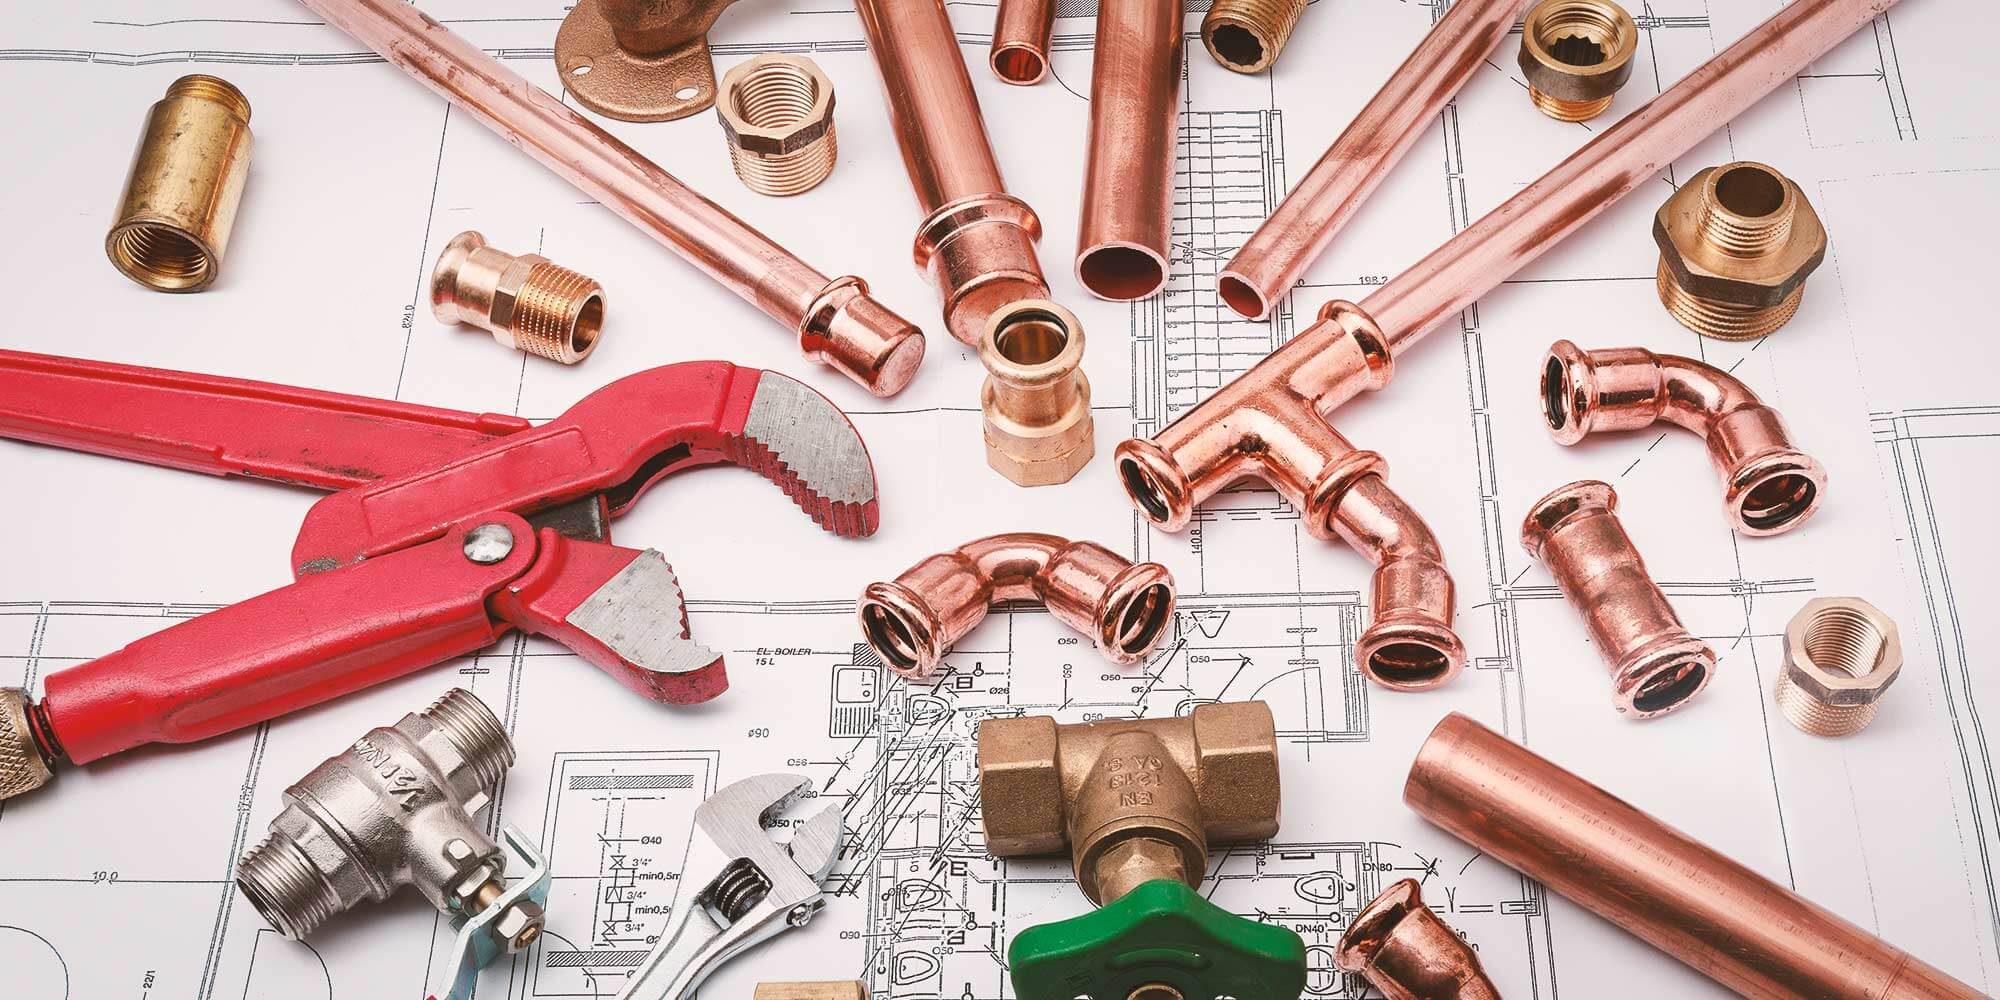 Upgrade Your Plumbing With These Top 3 Tips